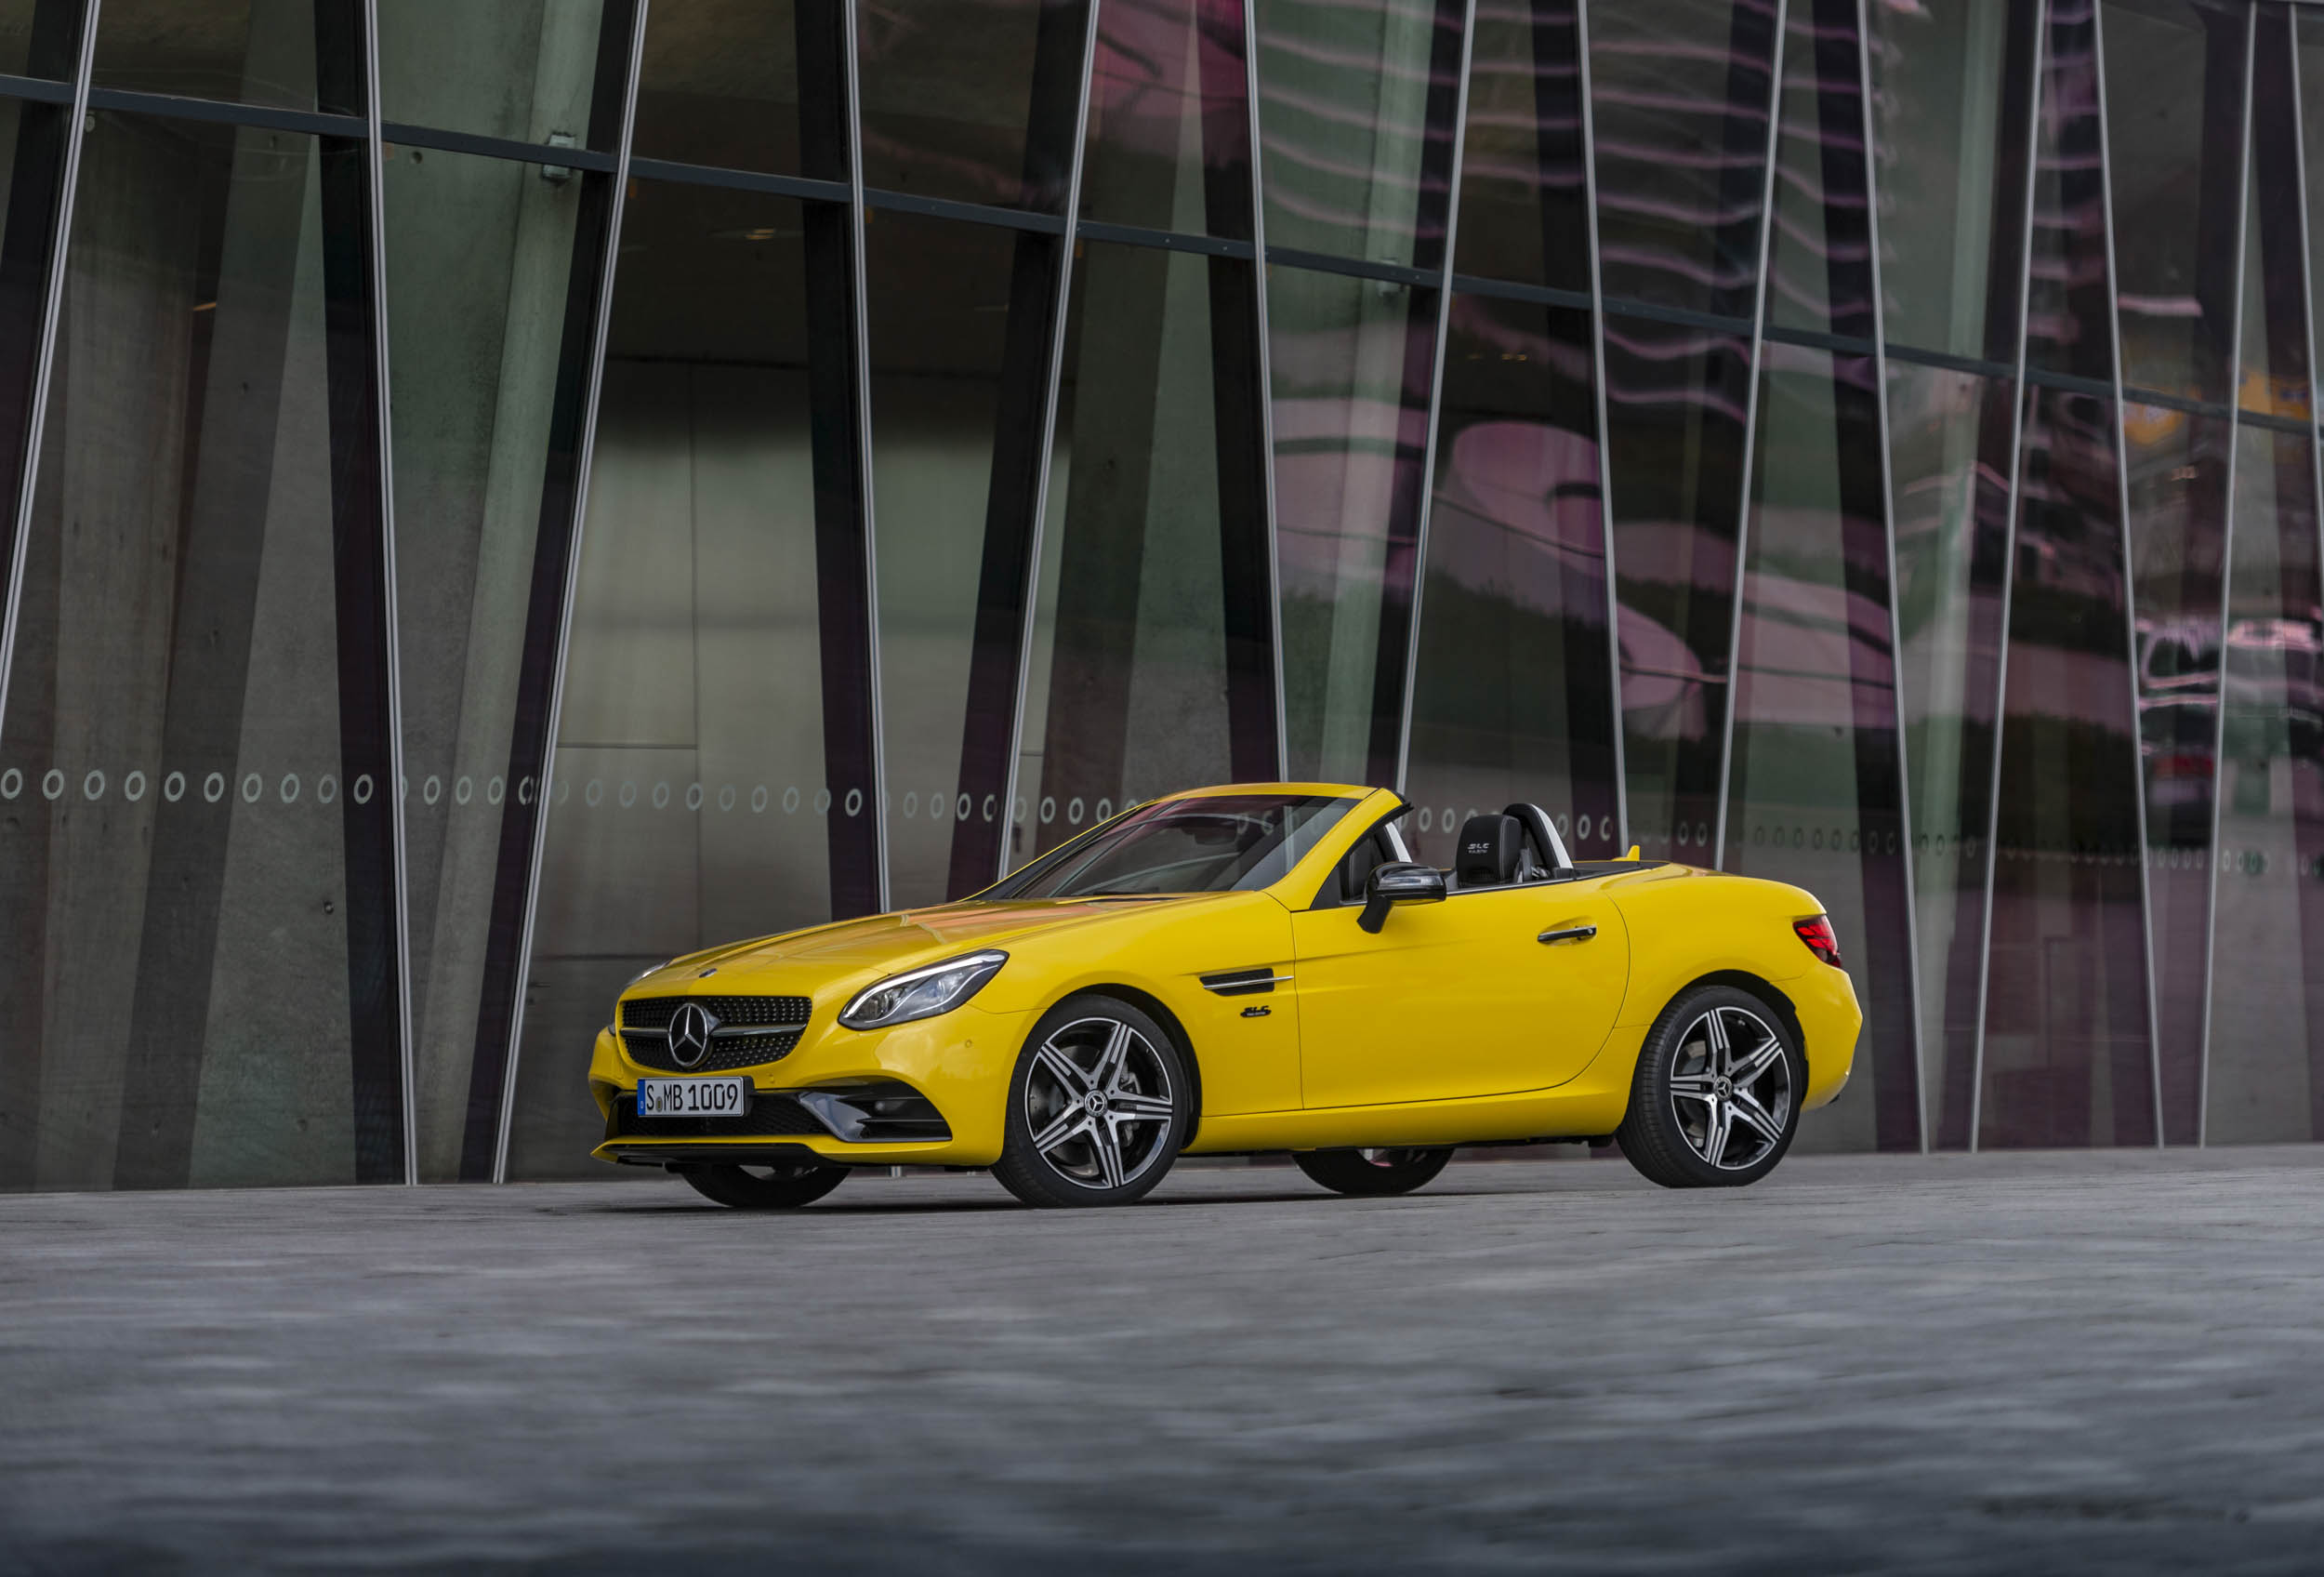 Mercedes says farewell to the SLC with this Final Edition